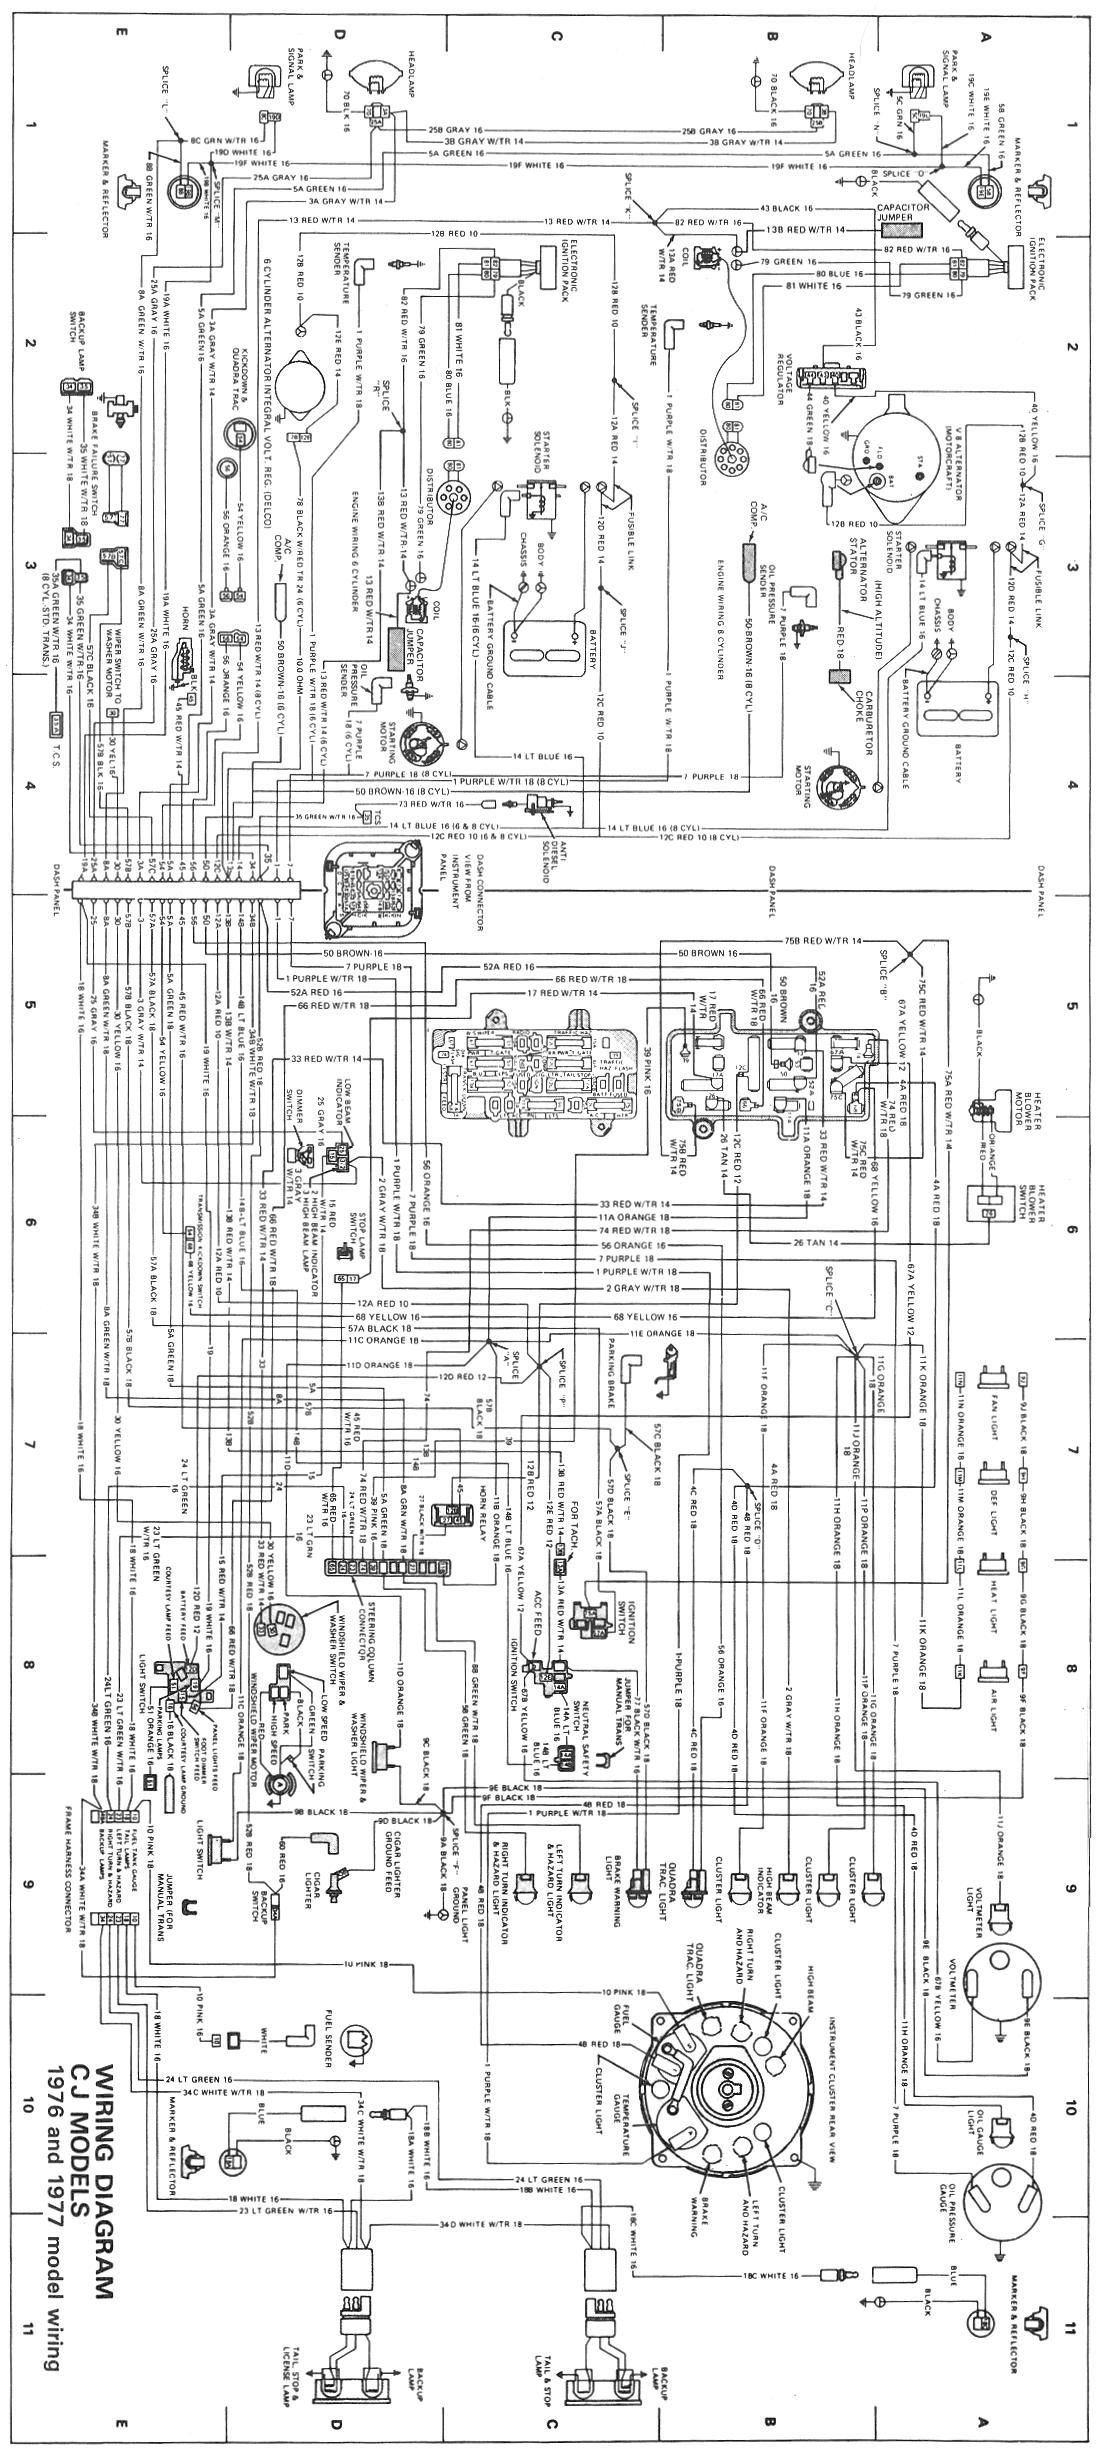 76 jeep wagoneer wiring diagram free picture  | 797 x 1000